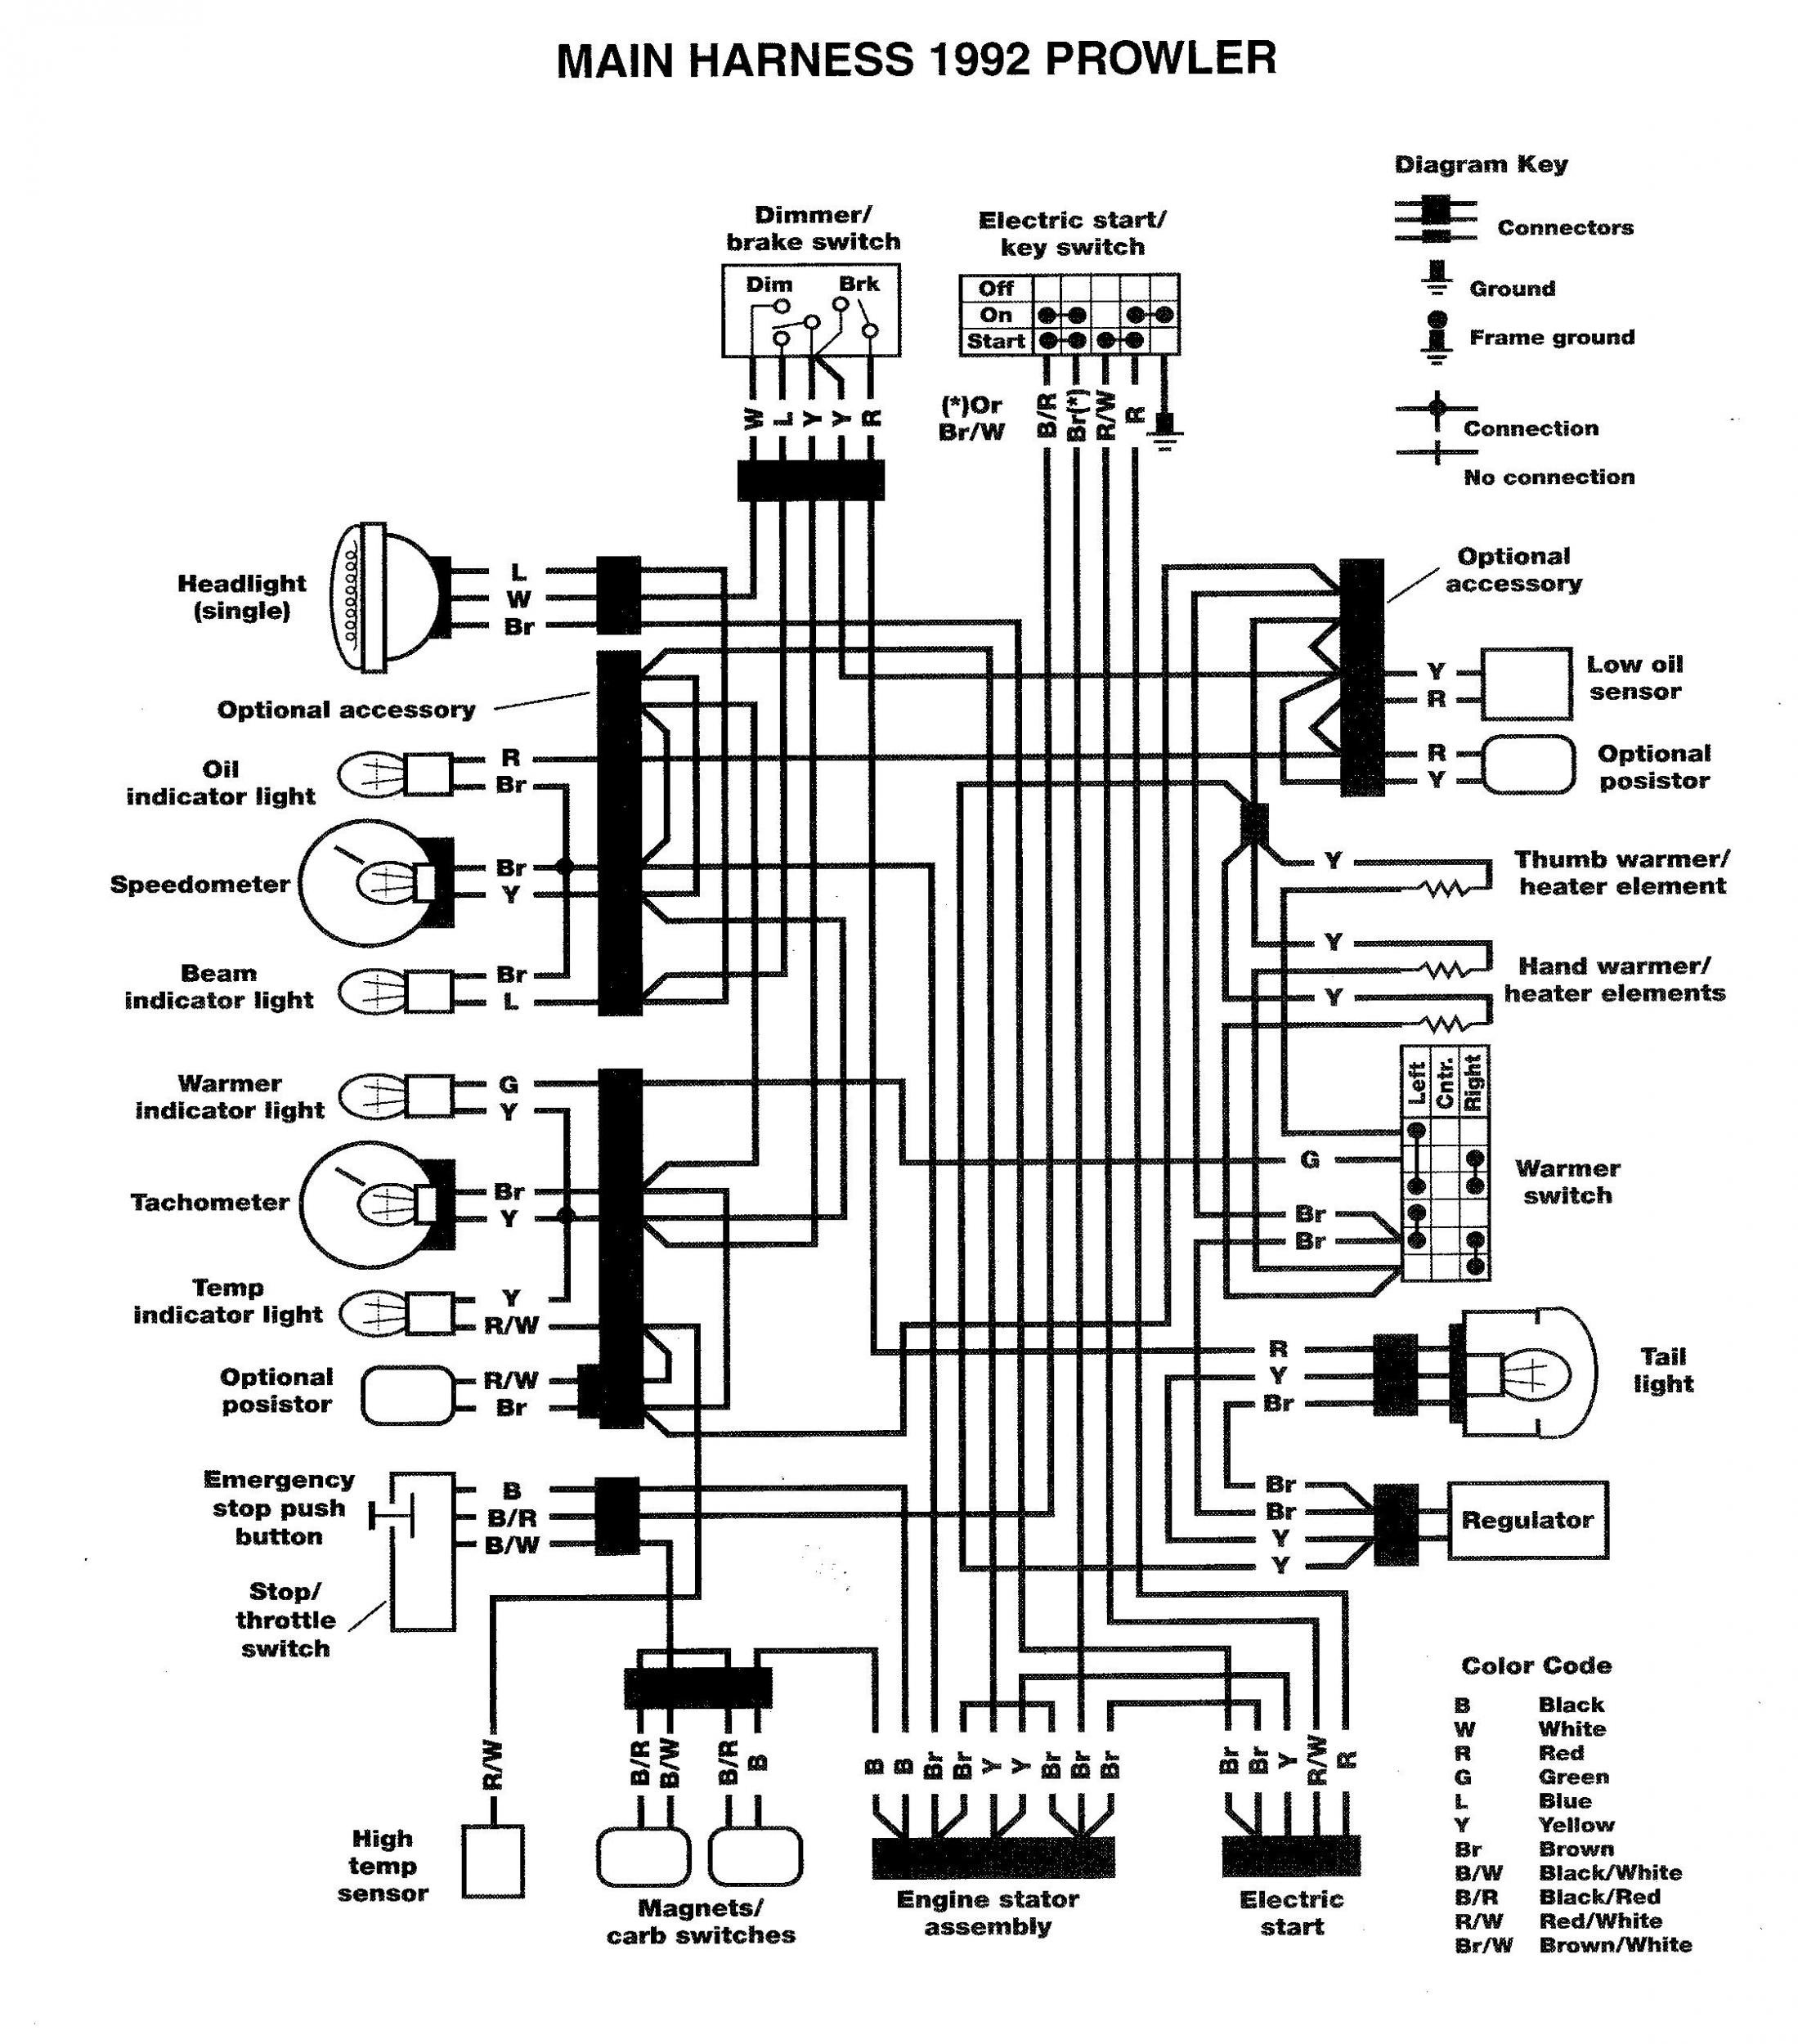 Diagram Apc 500 Wiring Diagram Full Version Hd Quality Wiring Diagram Diagramrt Hosteria87 It